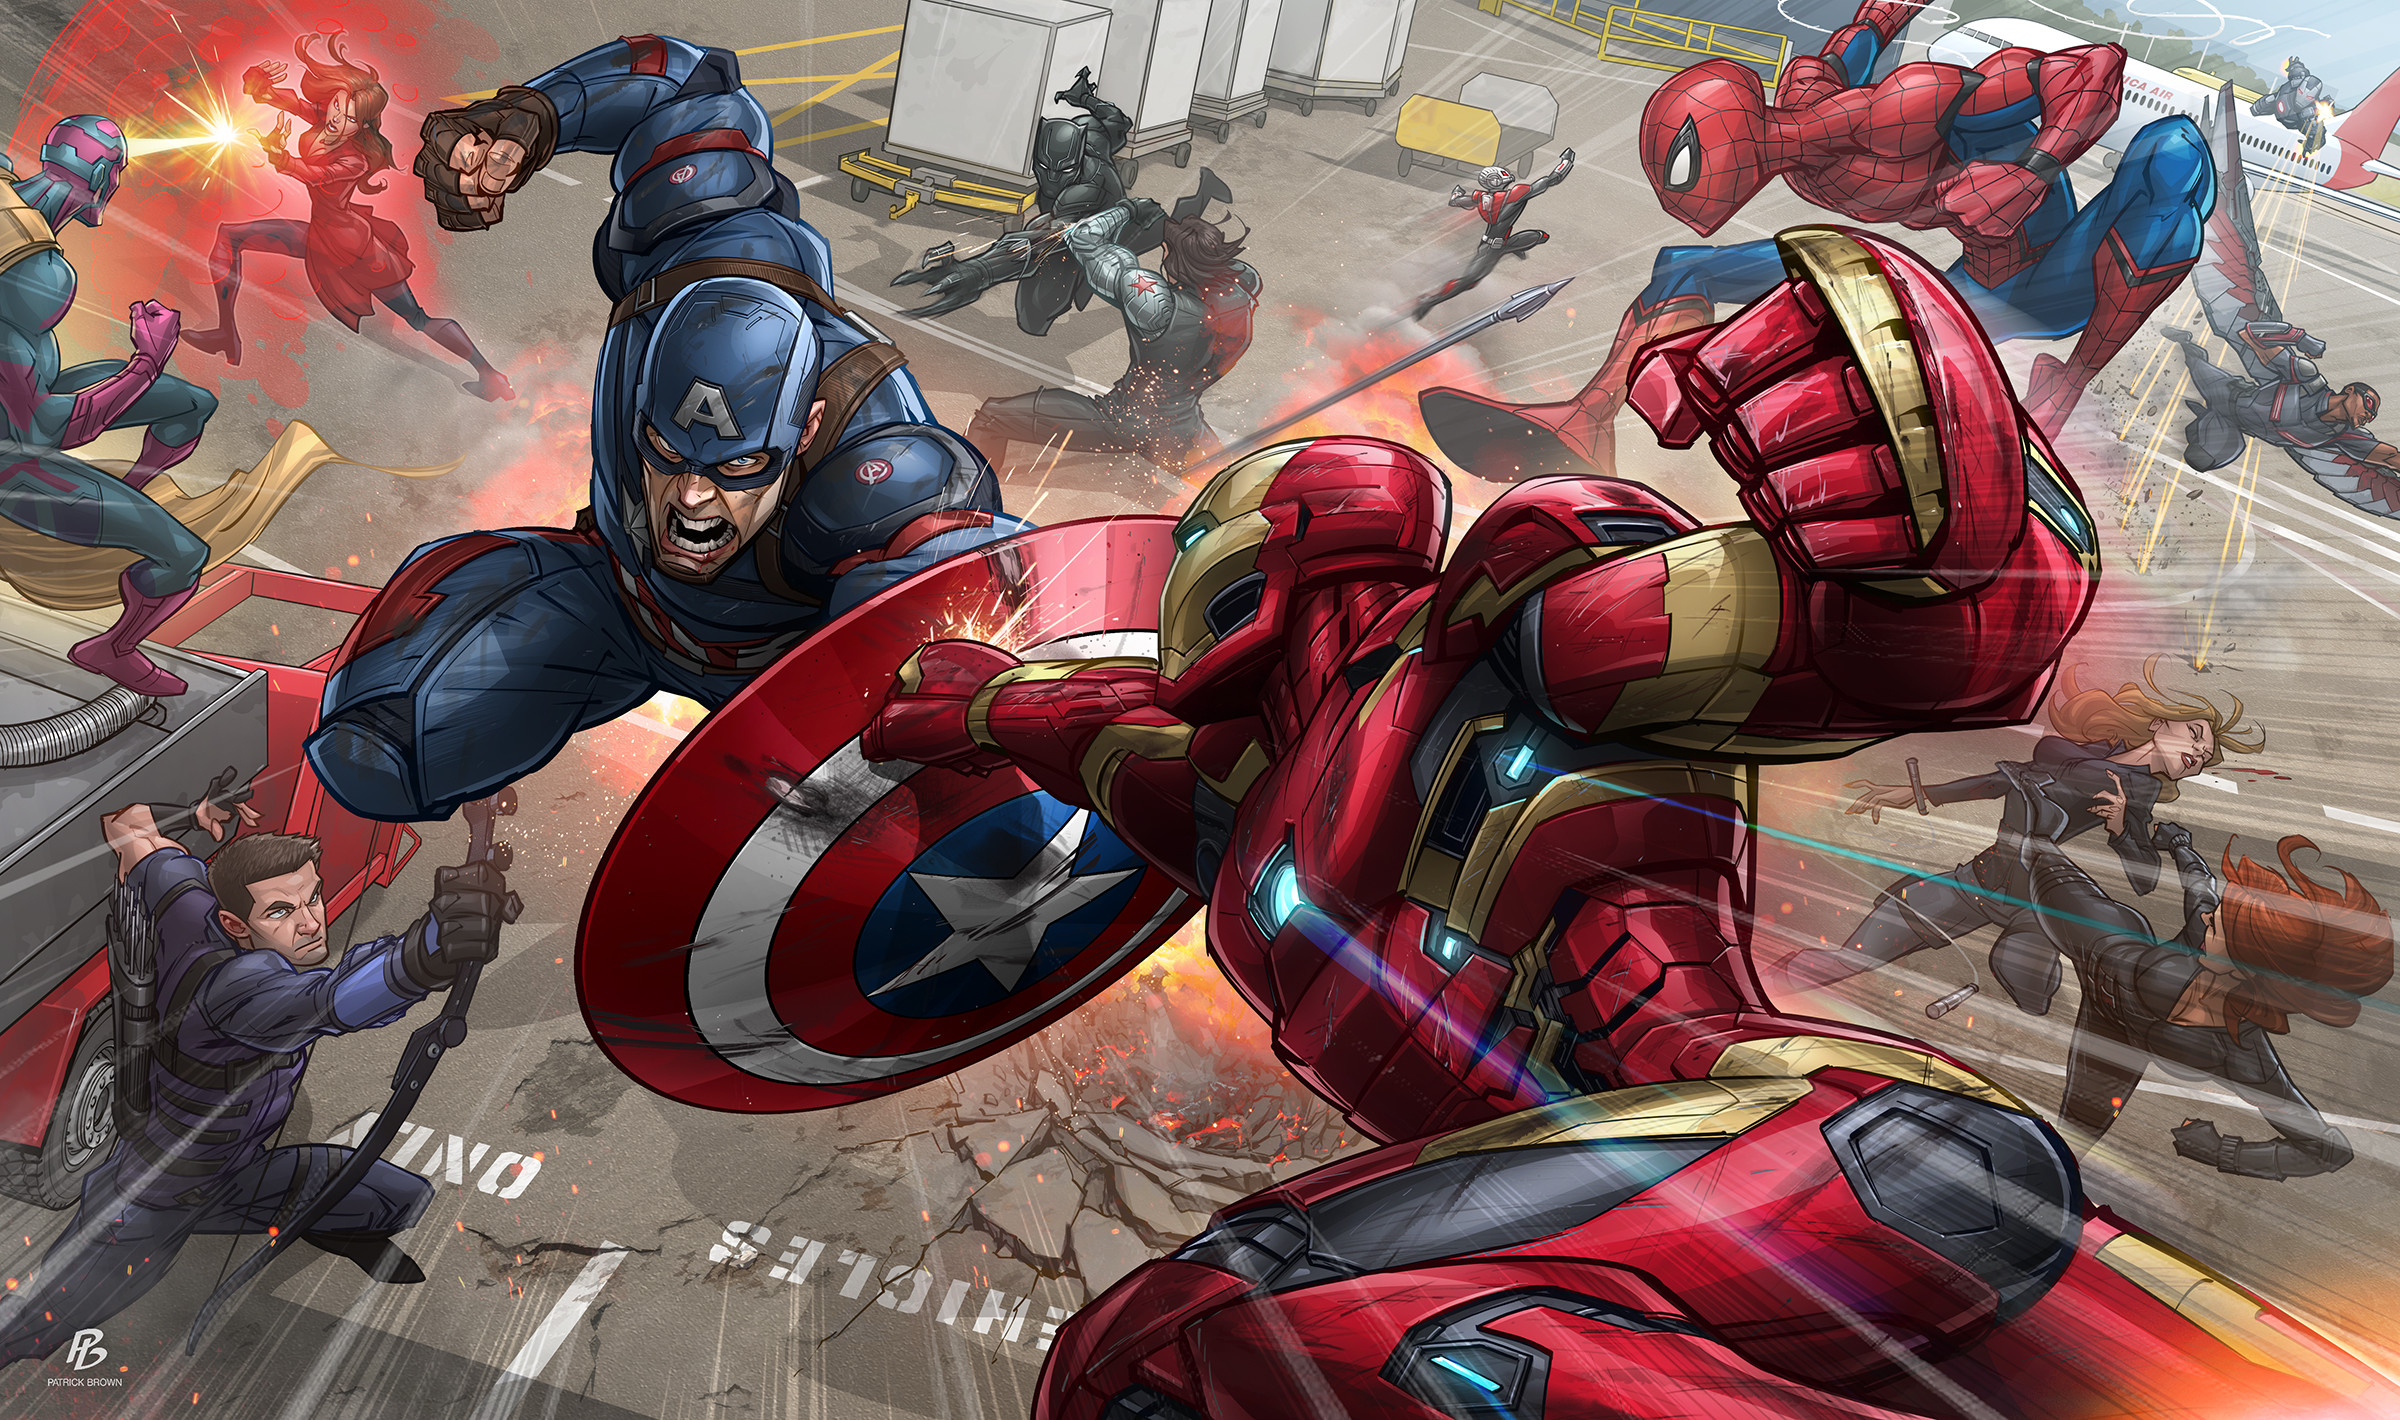 Res: 2400x1420, Marvel Comics Wallpapers 10 - 2400 X 1420